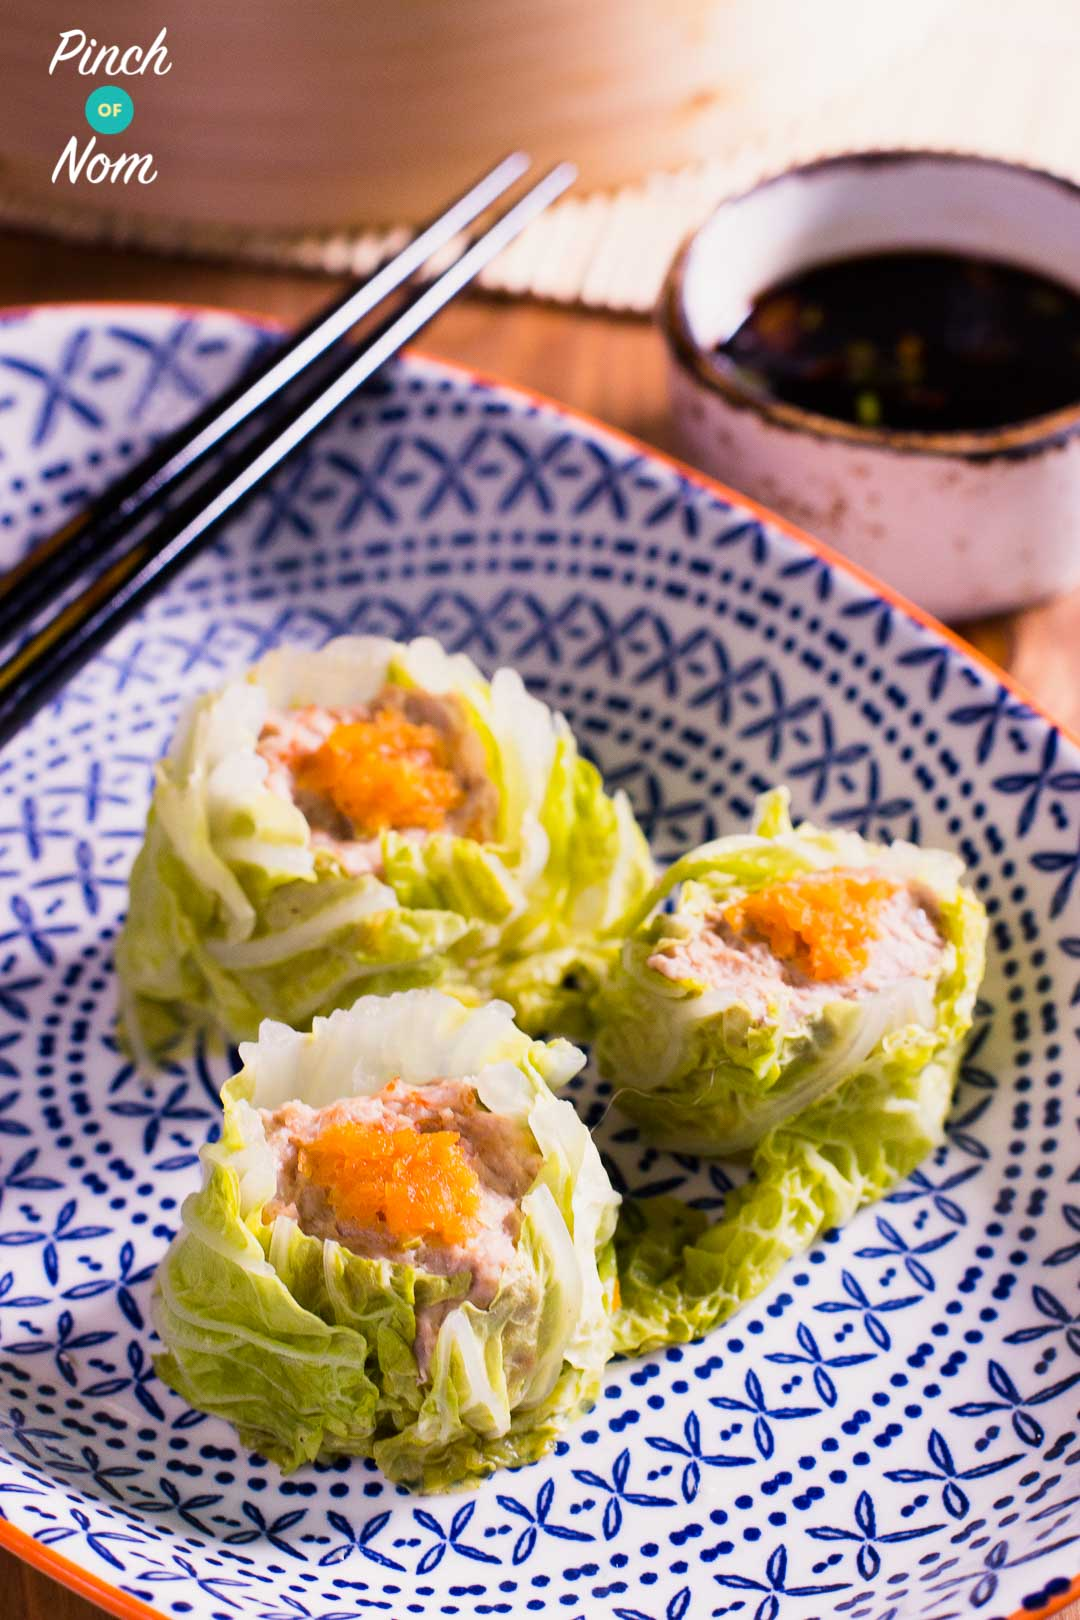 Syn Free Pork & Prawn Sui Mai | Syn Free Slimming World | 0.5 Weight Watchers Smart Points | 32Kcal each | pinchofnom.com